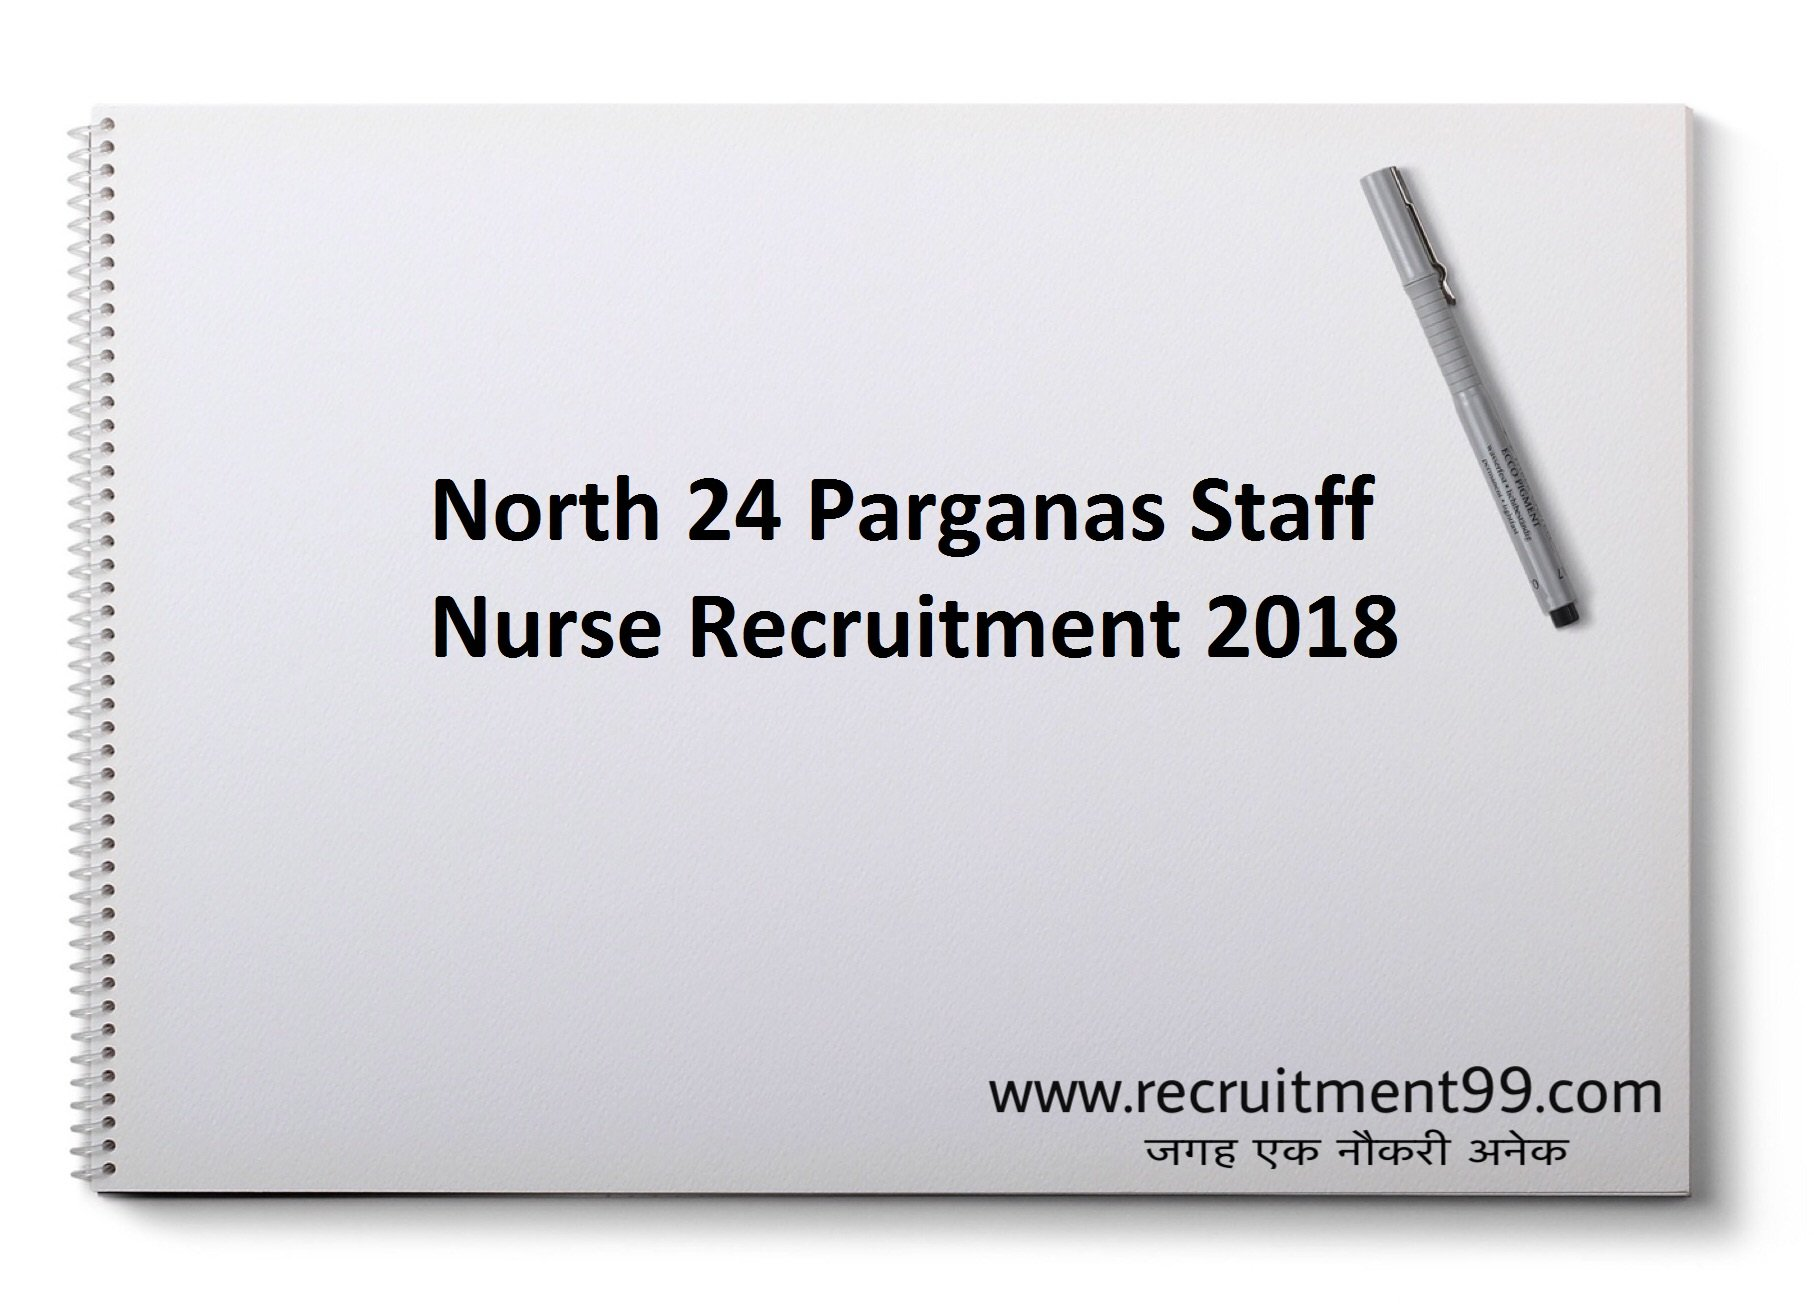 North 24 Parganas Staff Nurse Recruitment Admit Card Result 2018